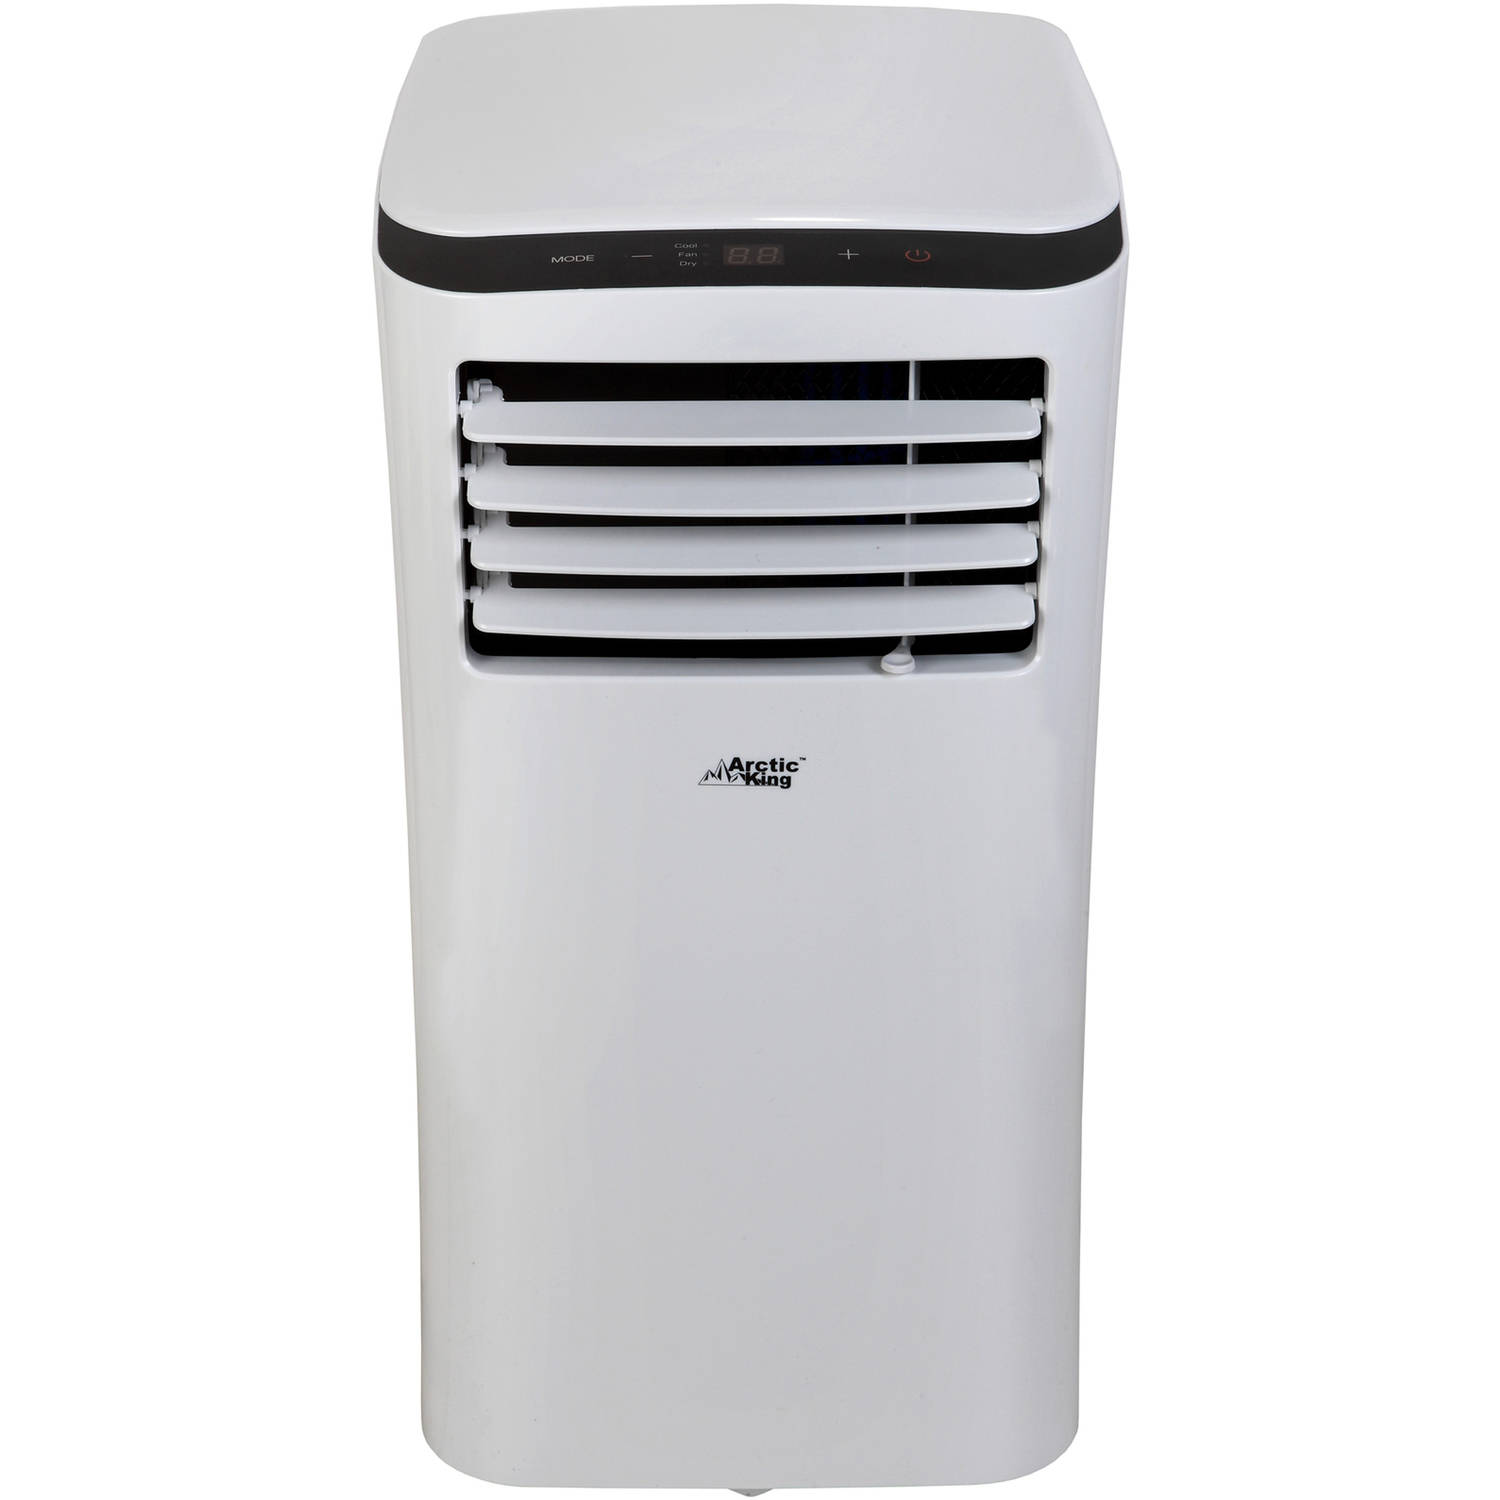 Arctic king portable air conditioner troubleshooting